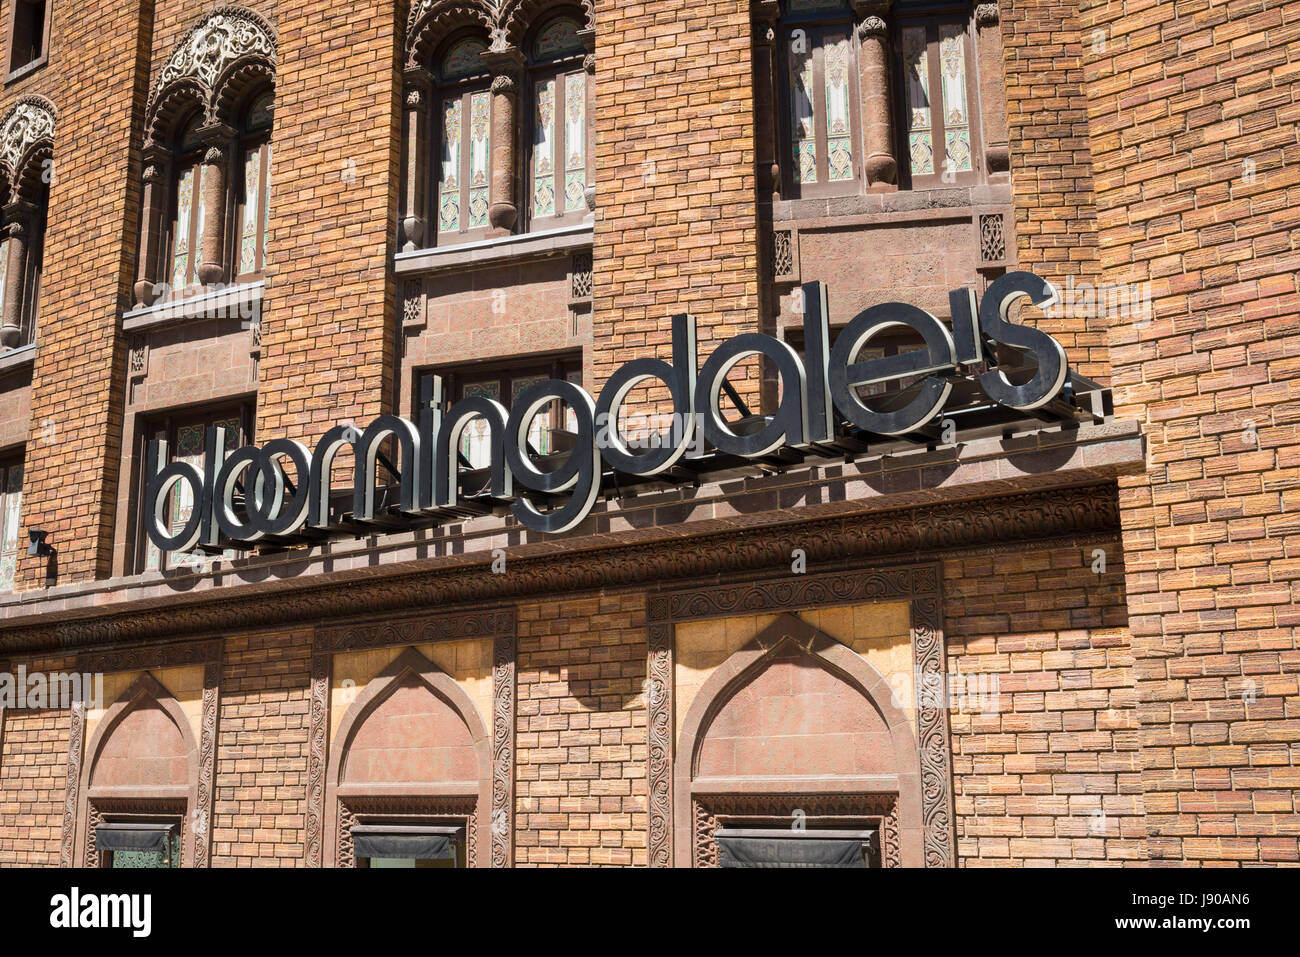 Chicago Illinois Near North Side Wabash Avenue Bloomingdales Home Furnishing store shop previously Medinah Shrine - Stock Image